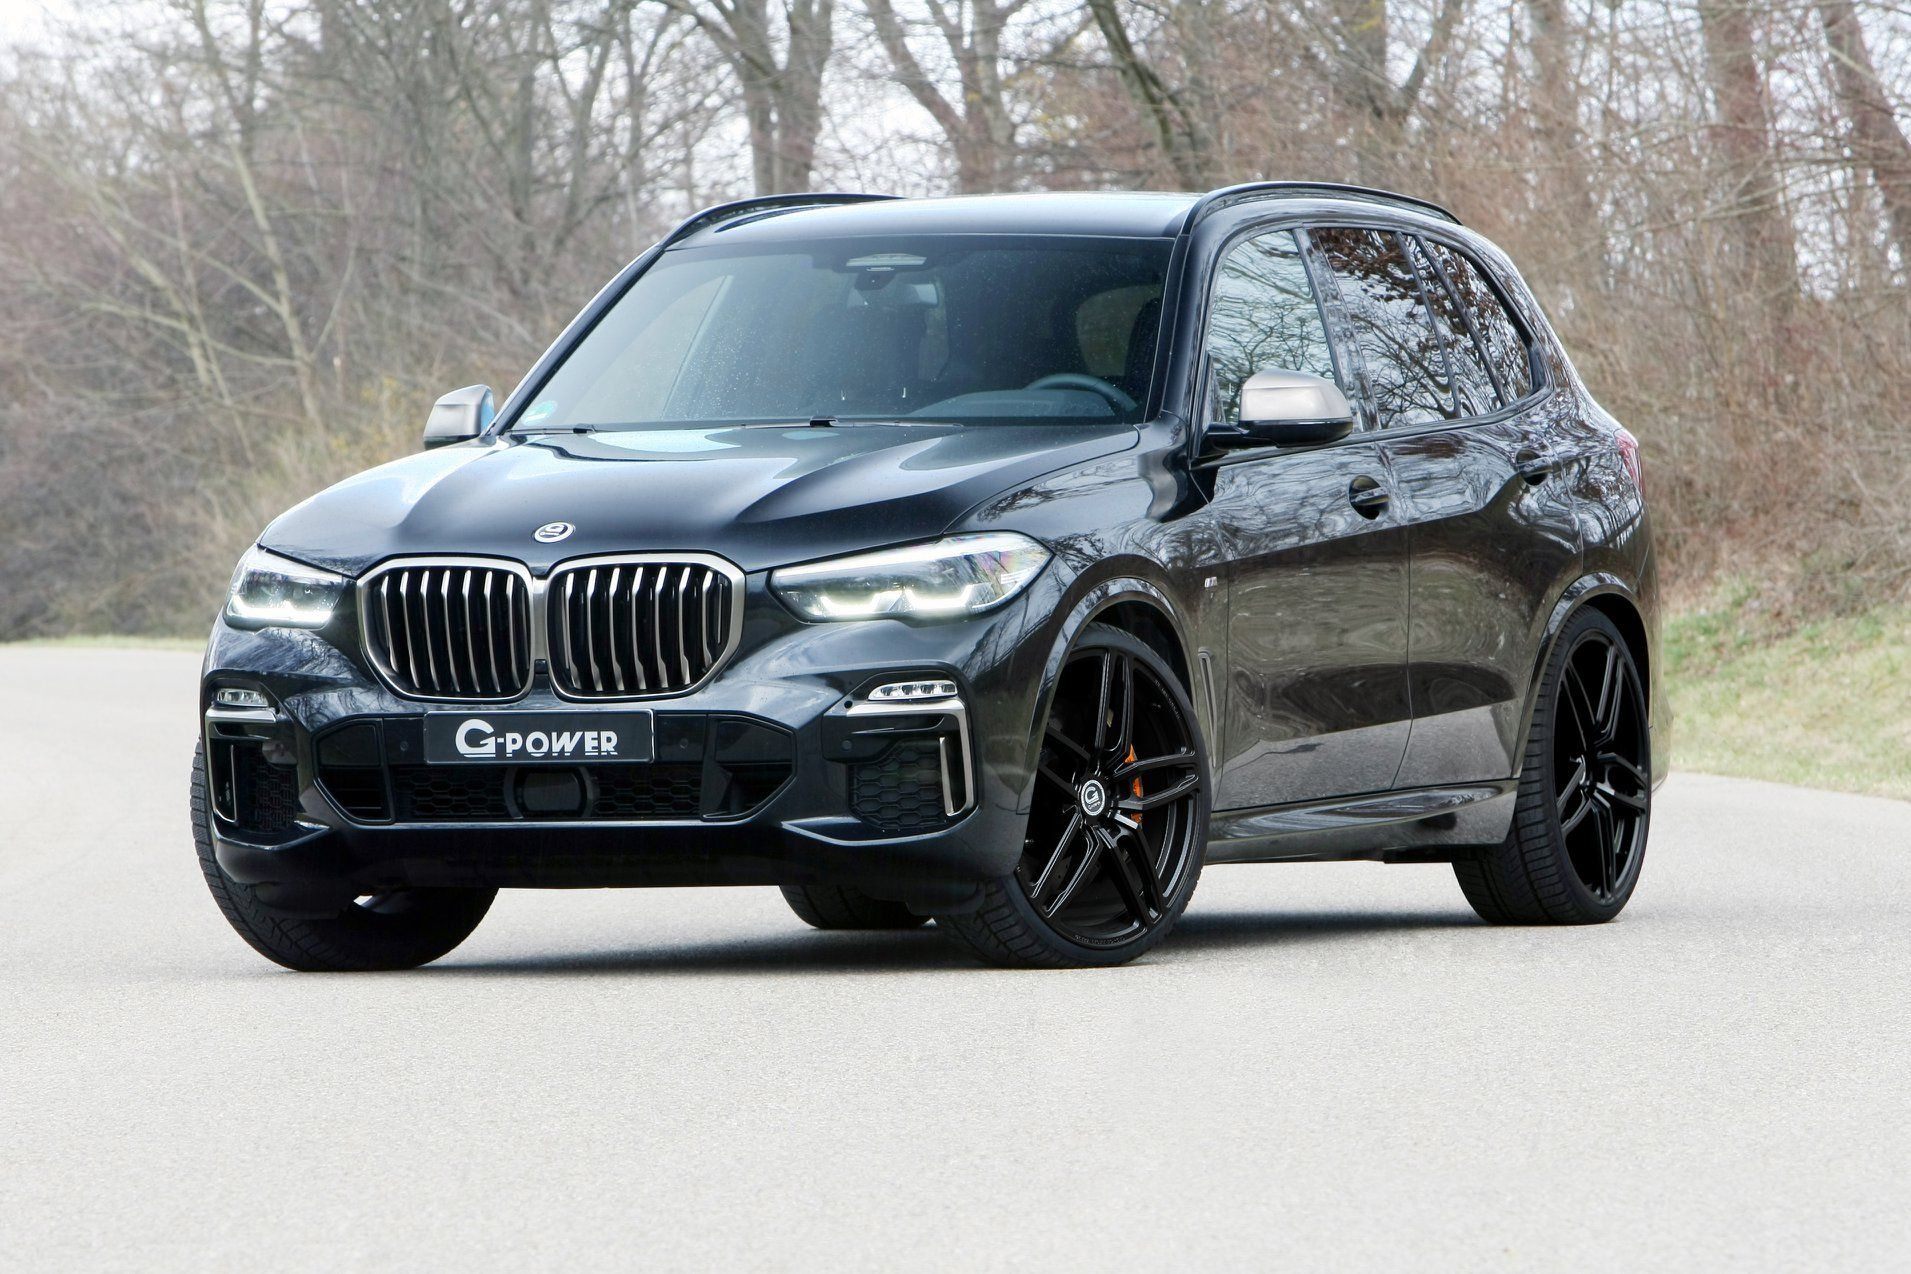 G Power Gives 475 Hp To The Bmw X5 M50d With Images Bmw X5